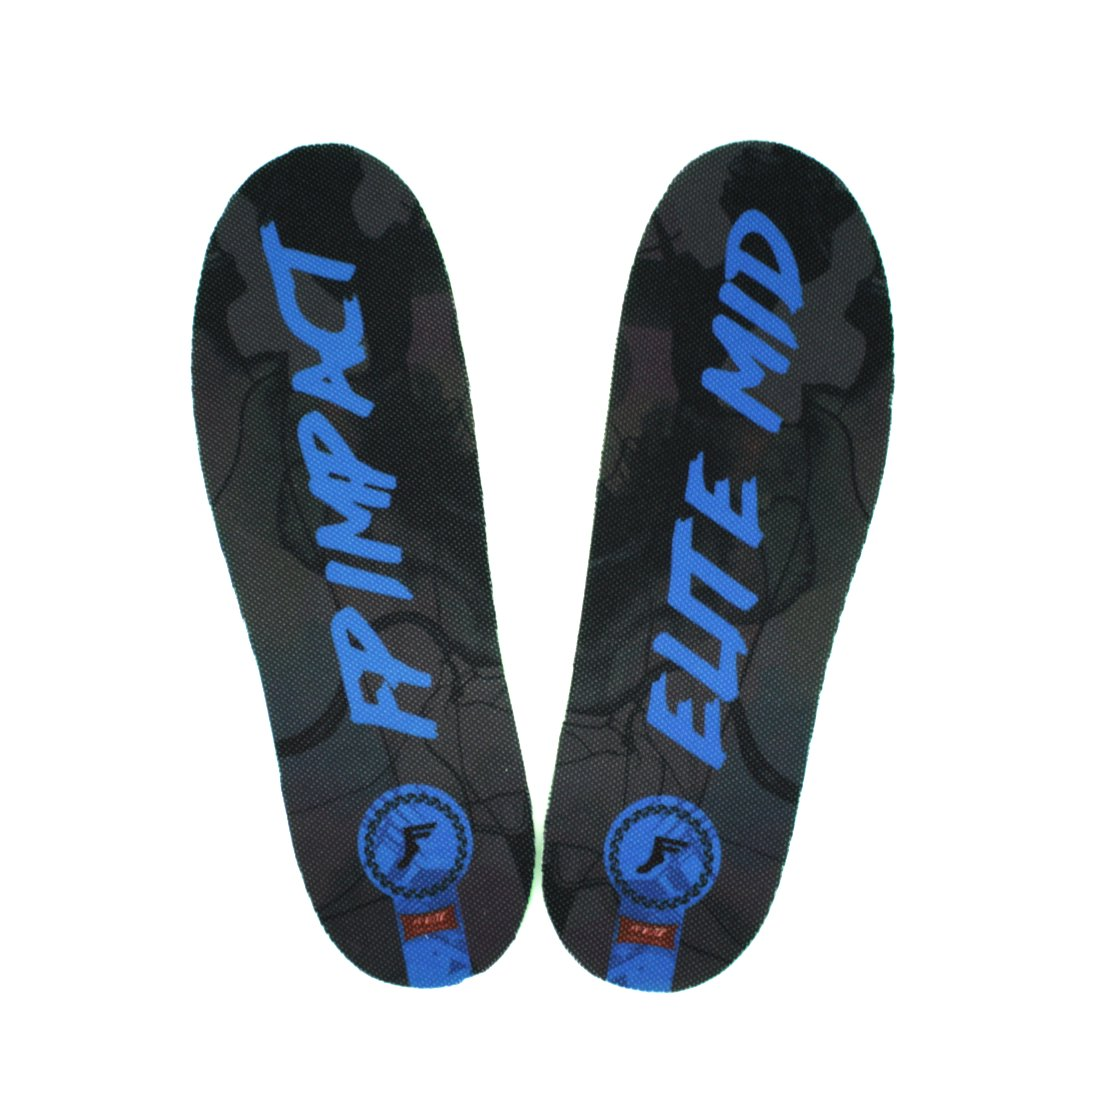 【FOOTPRINT INSOLE】King Form Elite Mid